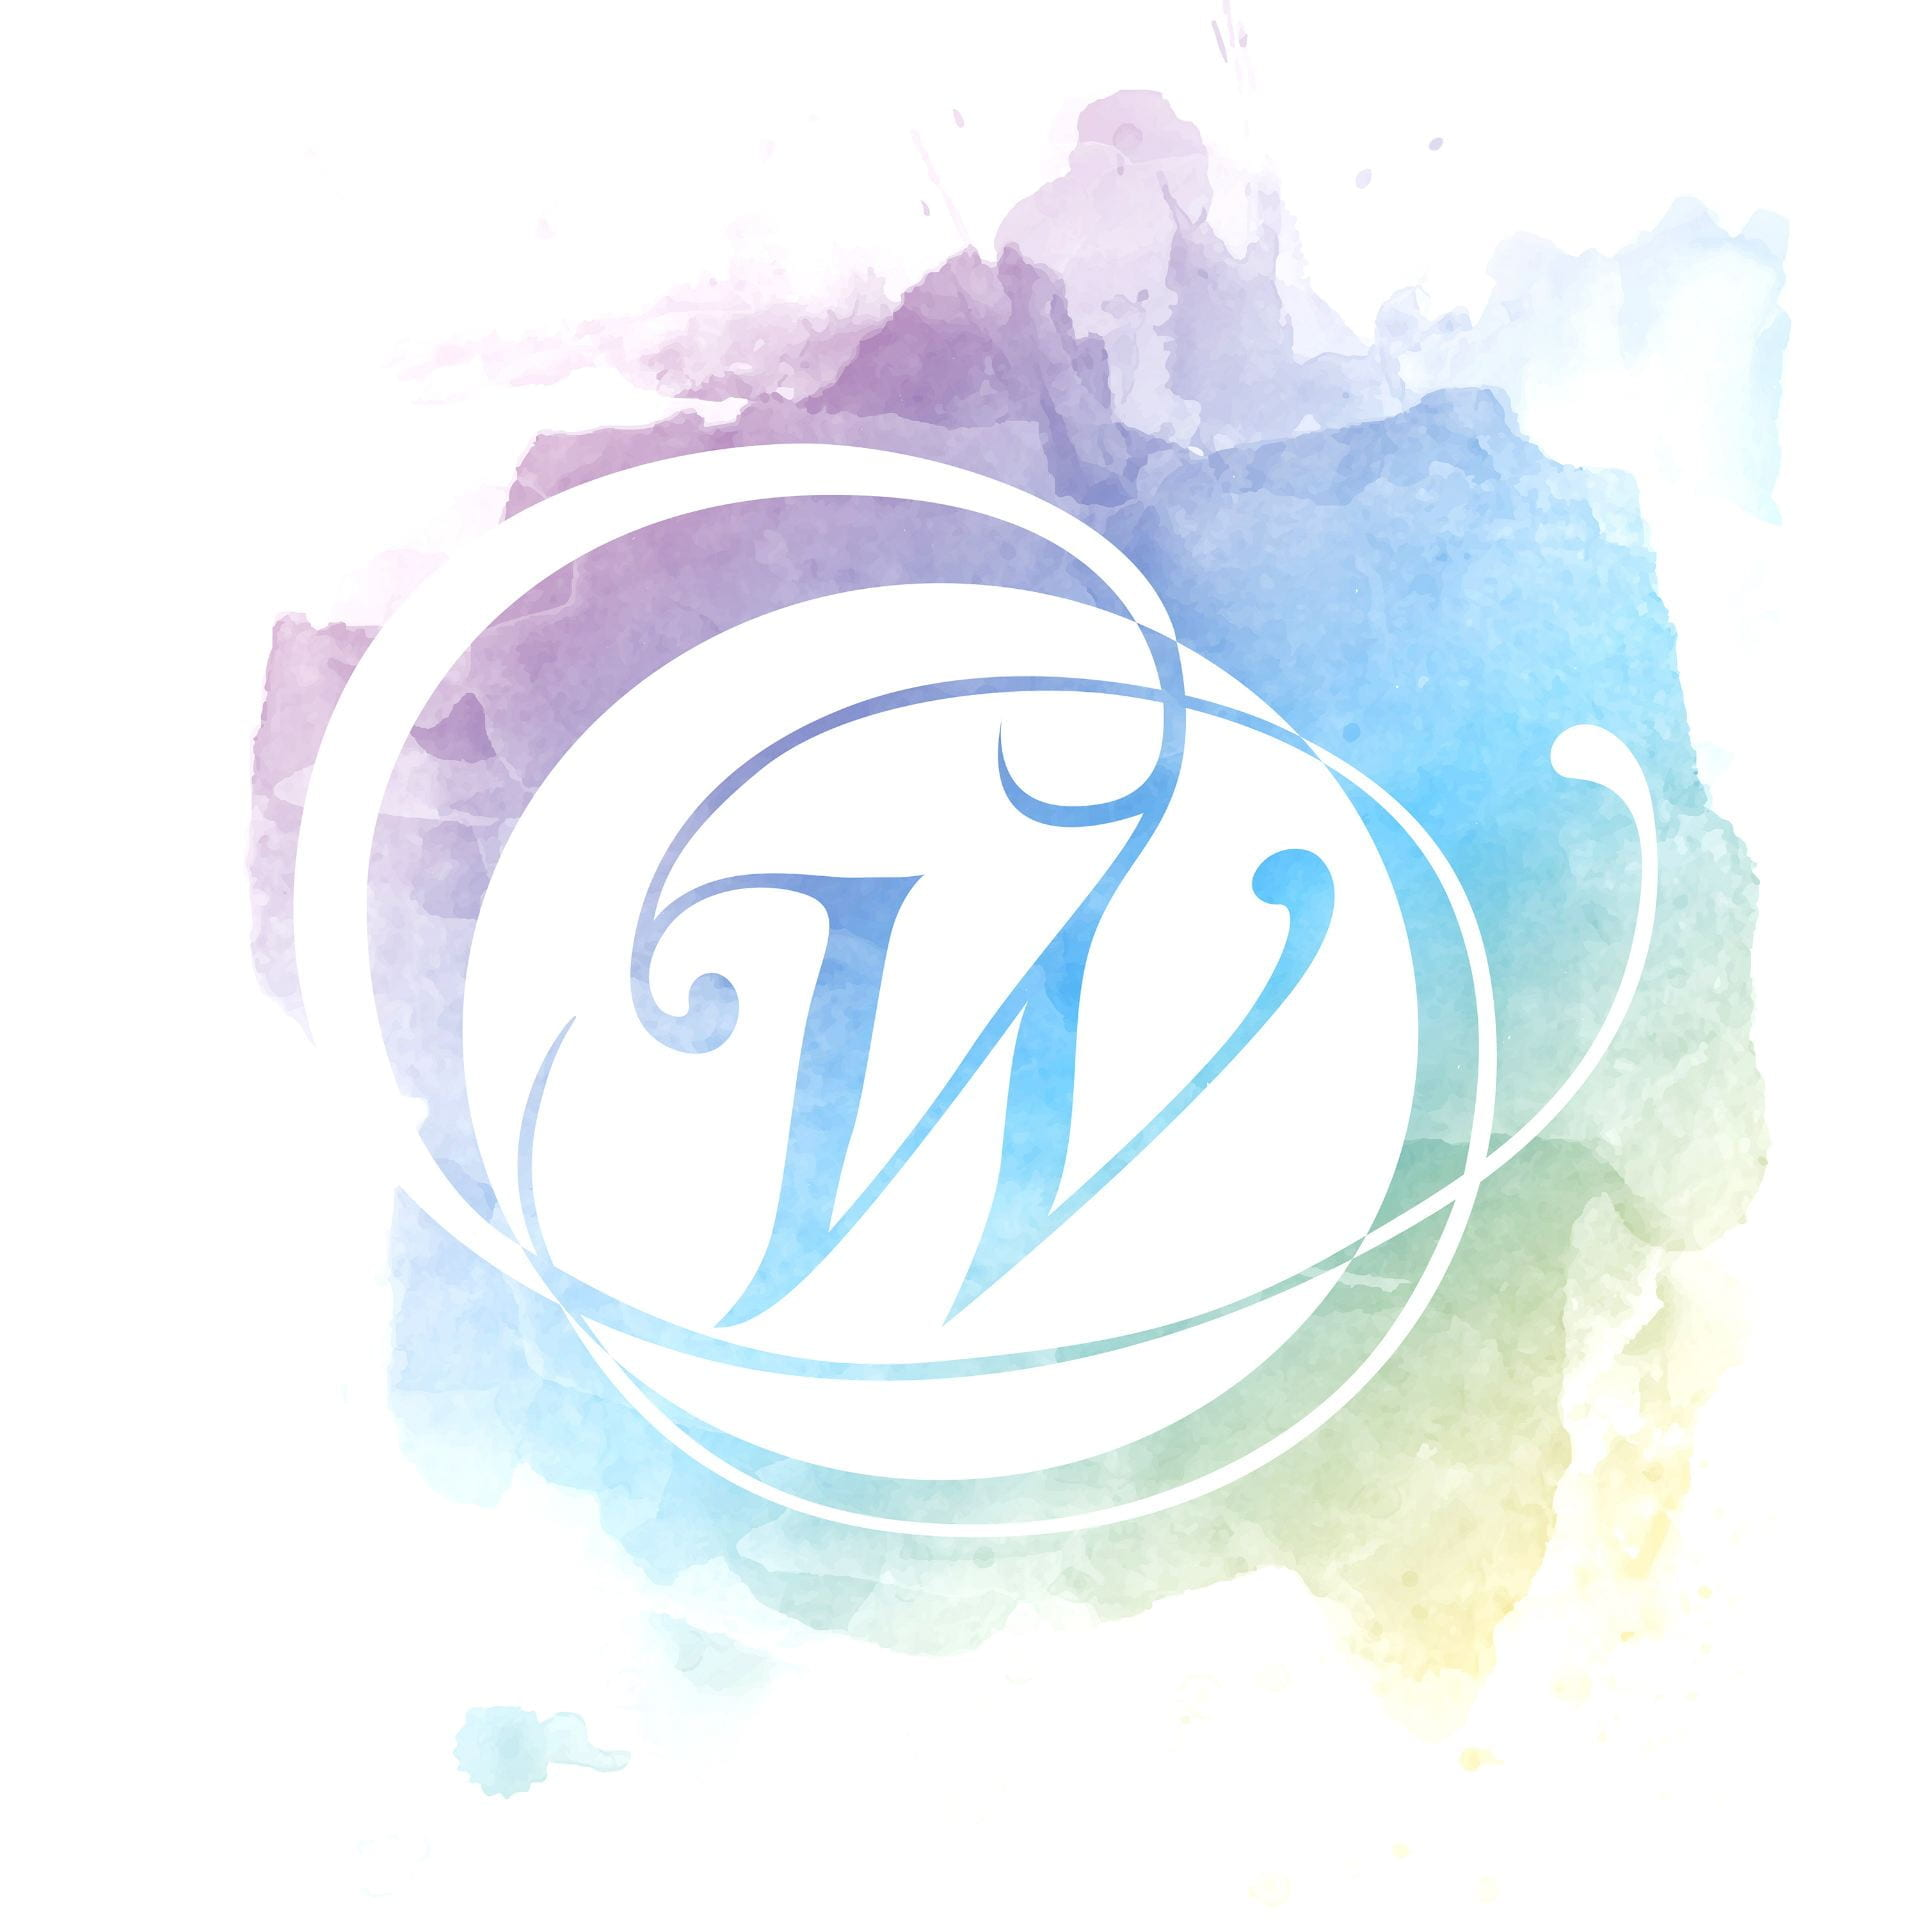 The Penn State Commission for Women logo includes a stylized cursive W with swirls around it on a pastel watercolor background.